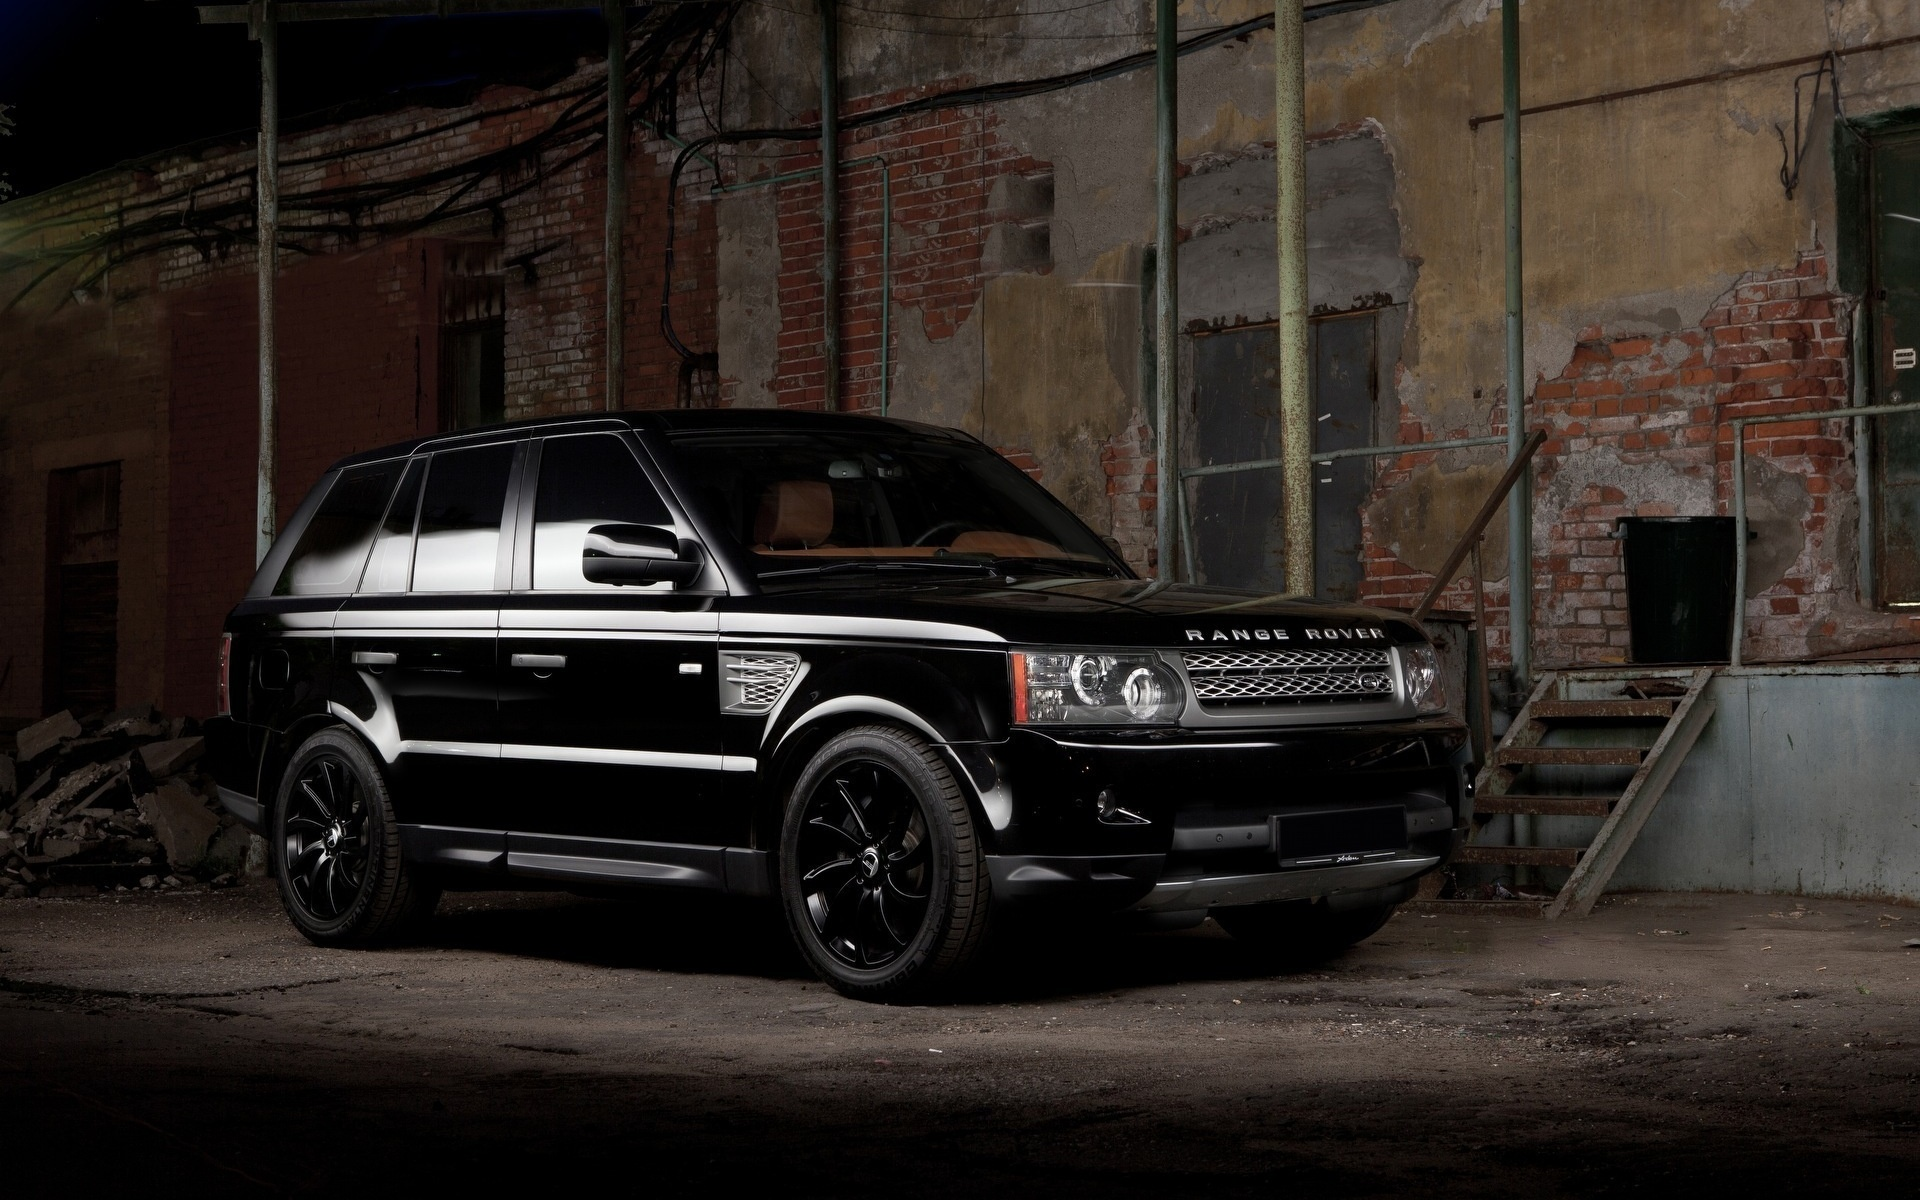 Awesome Range Rover Wallpaper